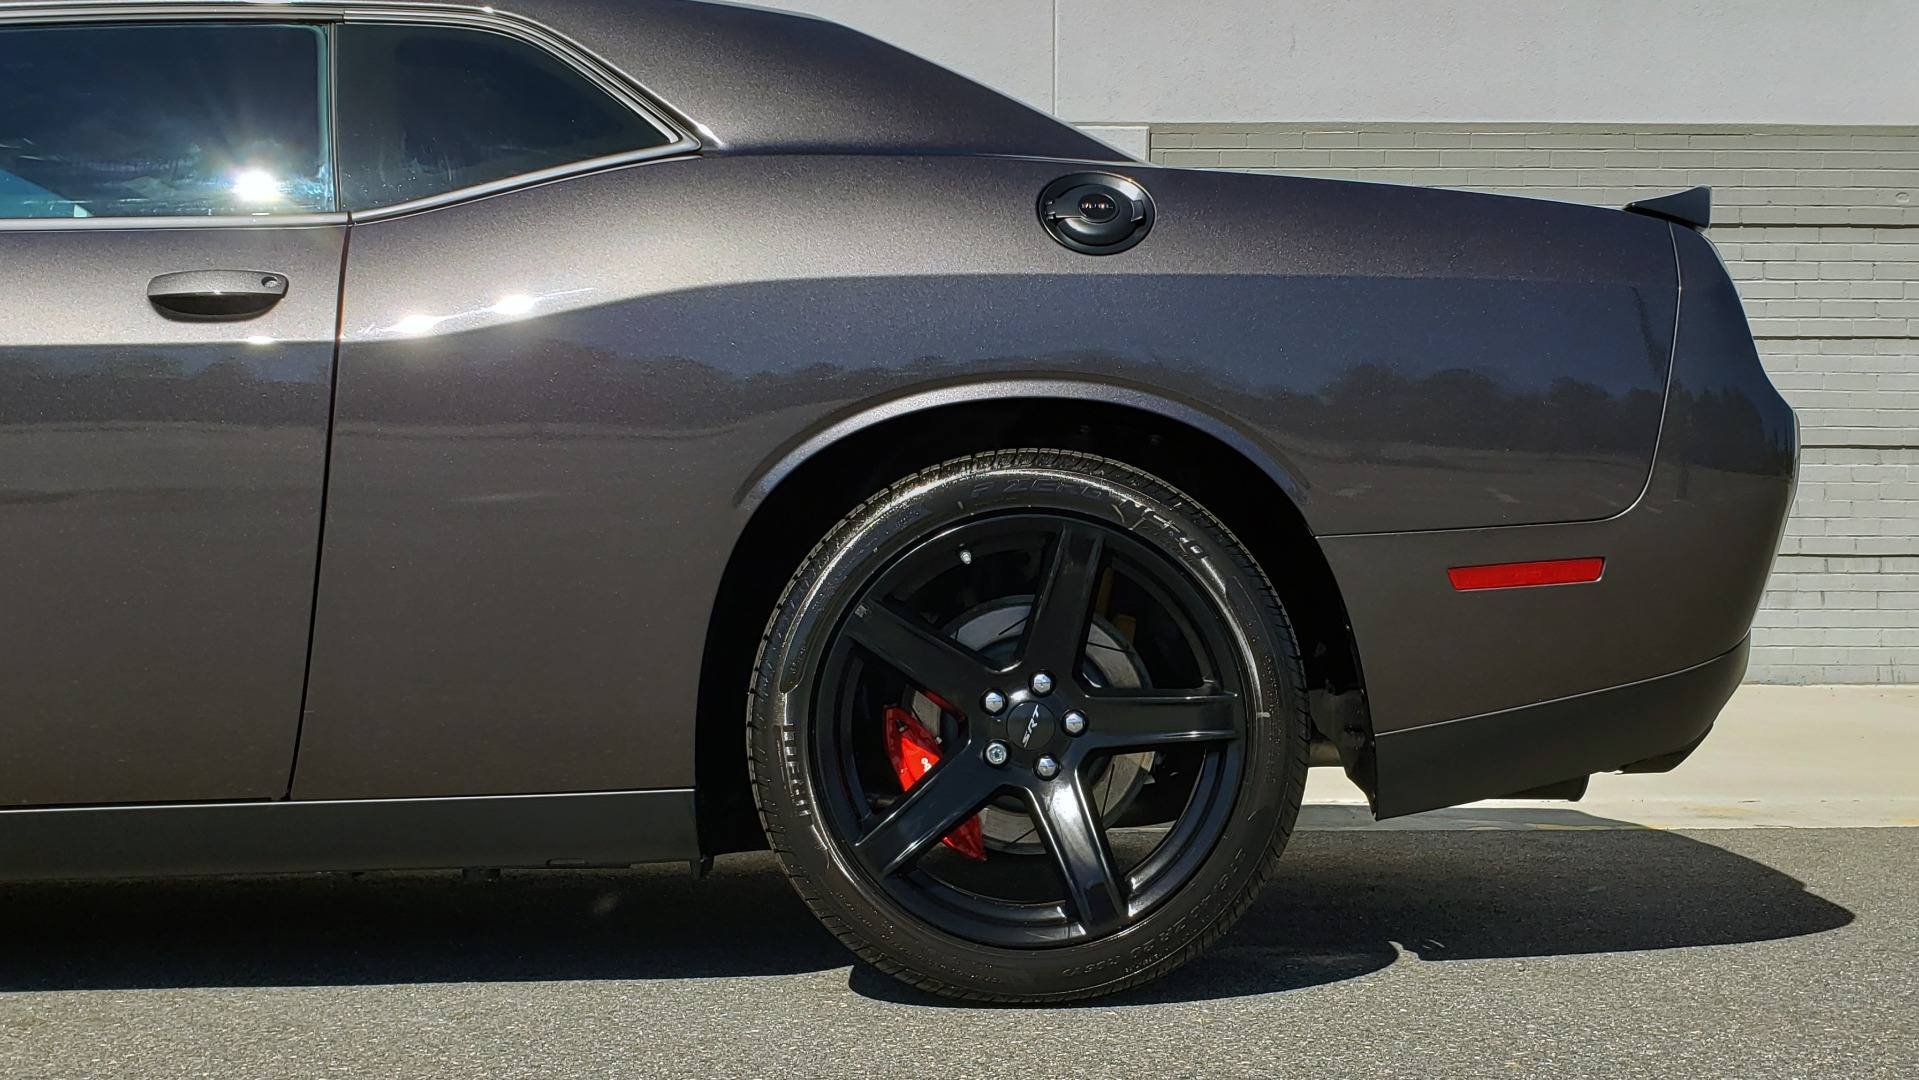 Used 2020 Dodge CHALLENGER SRT HELLCAT (717HP) / NAV / AUTO / CLOTH / REARVIEW / LOW MILES for sale $64,999 at Formula Imports in Charlotte NC 28227 78